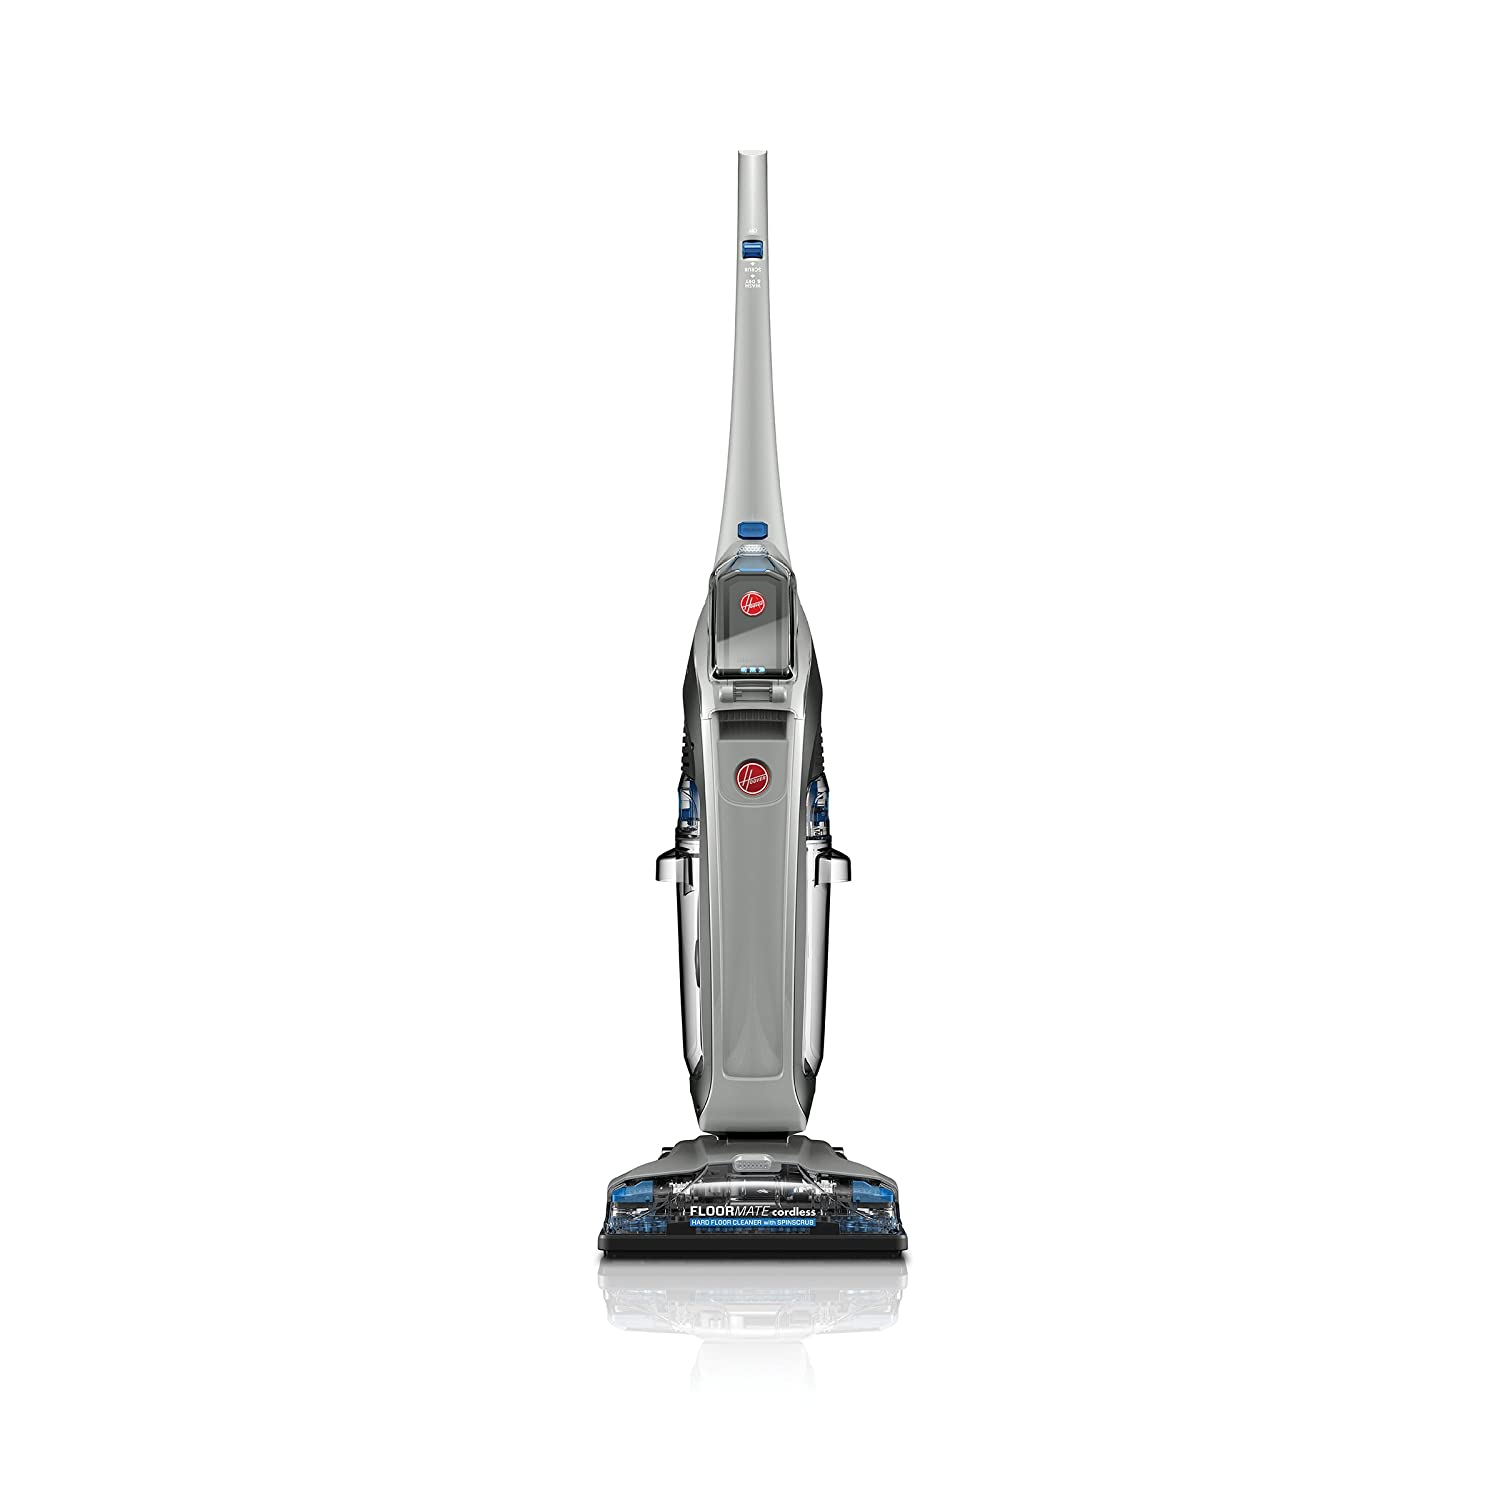 Amazon hoover floormate cordless hard floor cleaner amazon hoover floormate cordless hard floor cleaner bh55100pc home kitchen dailygadgetfo Images